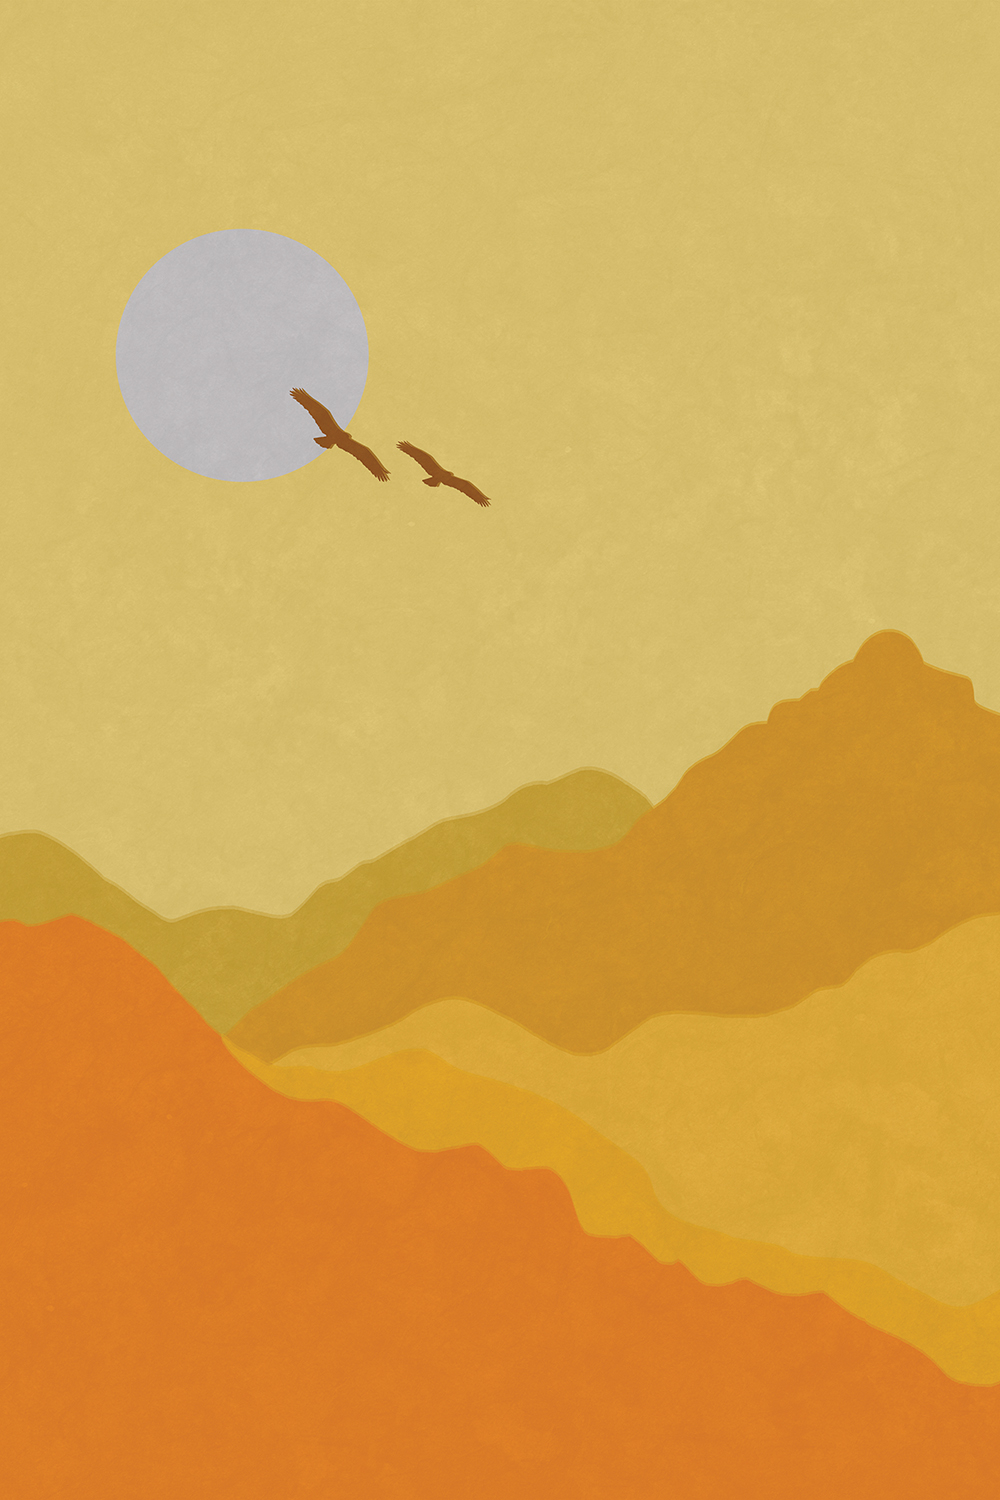 Graphic of yellow-toned mountain landscape with two birds flying in front of the sun